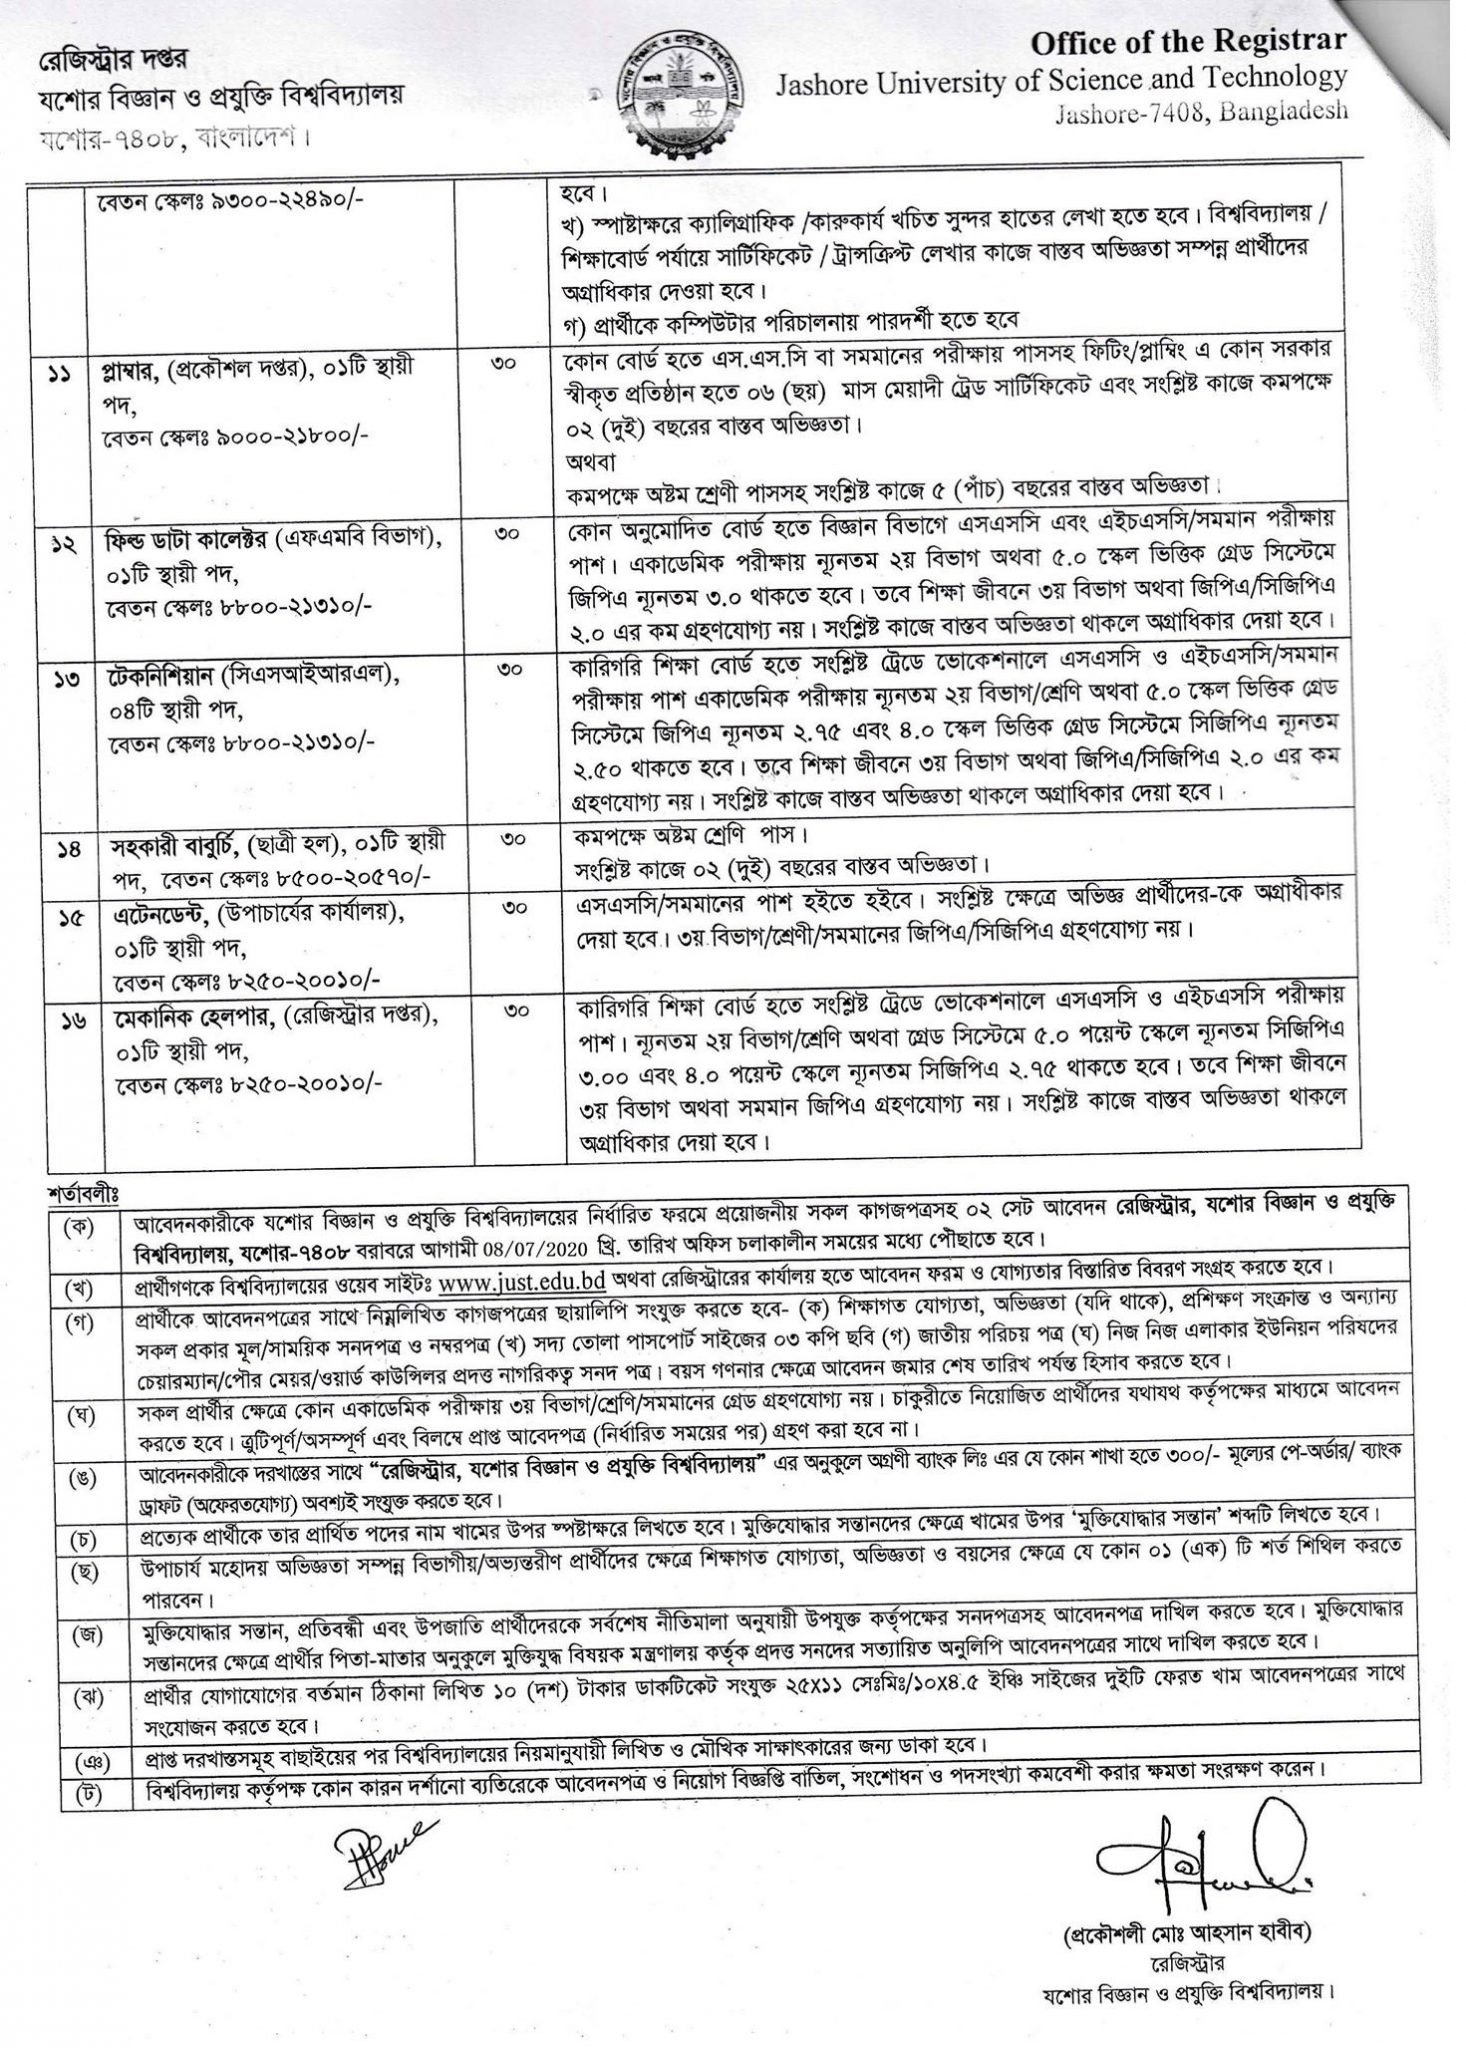 Jessore University of Science and Technology Jobs Circular 2020